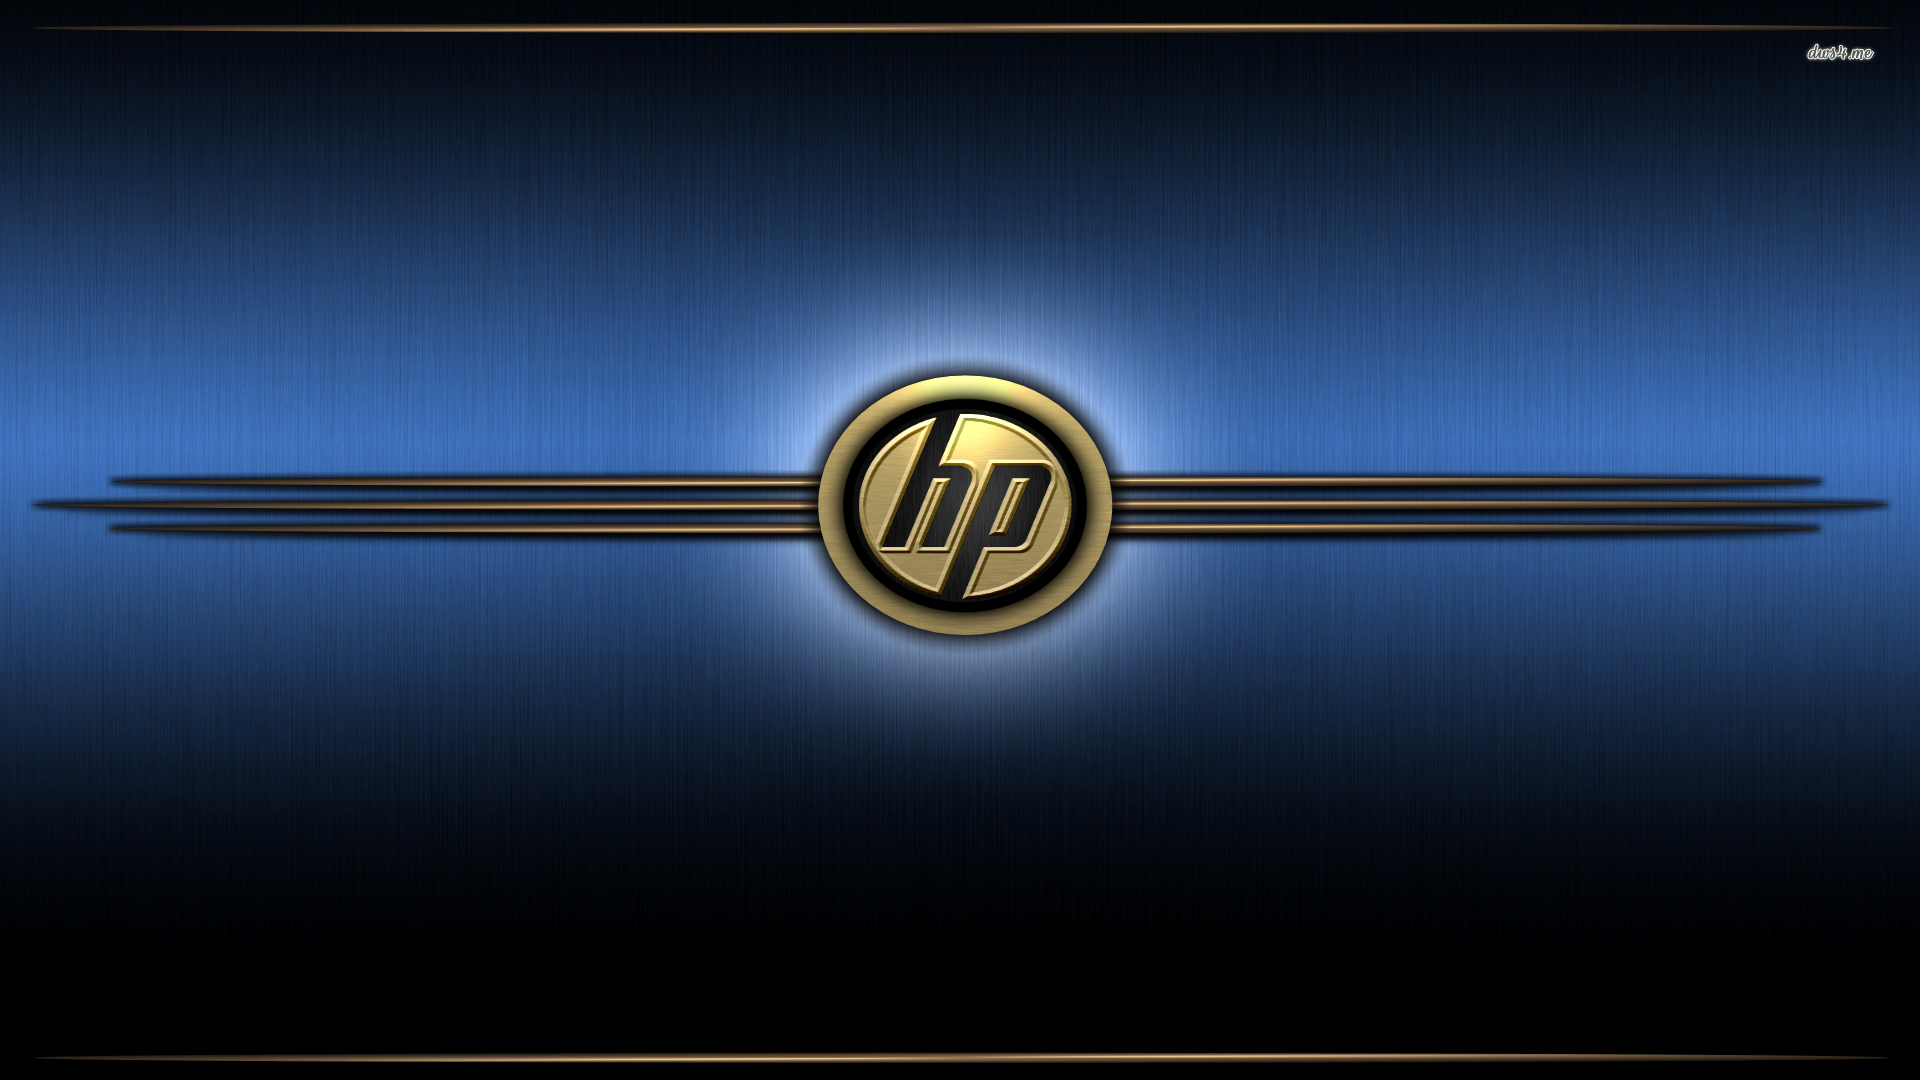 Download HD Wallpaper For Hp Laptop Free Download Gallery